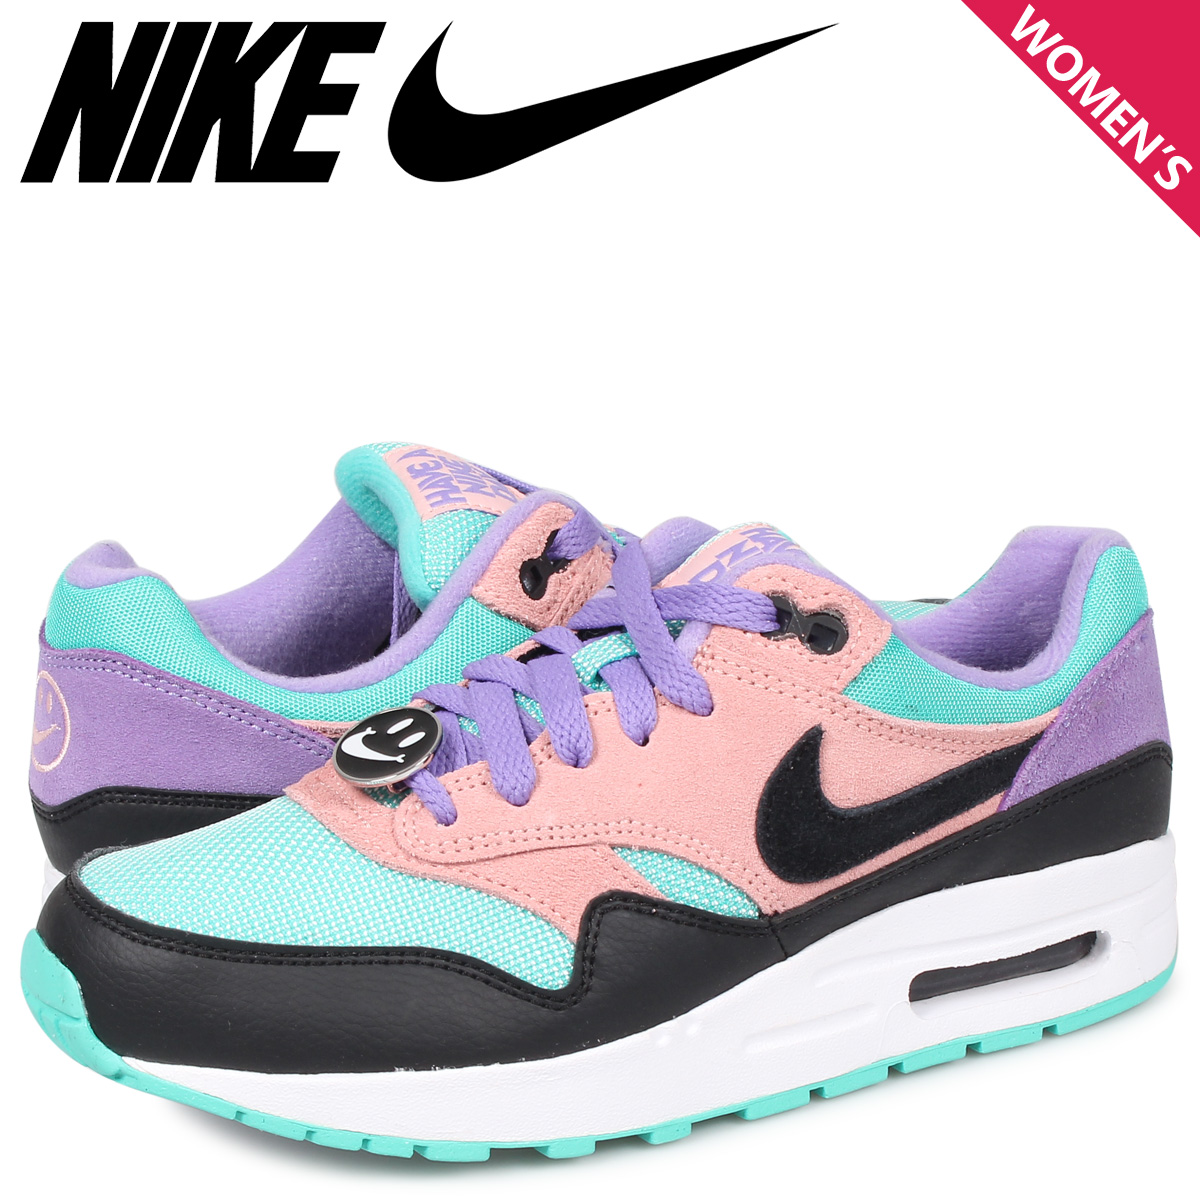 NIKE AIR MAX 1 NK DAY GS HAVE A NIKE DAY Kie Ney AMAX 1 sneakers Lady's pink AT8131 001